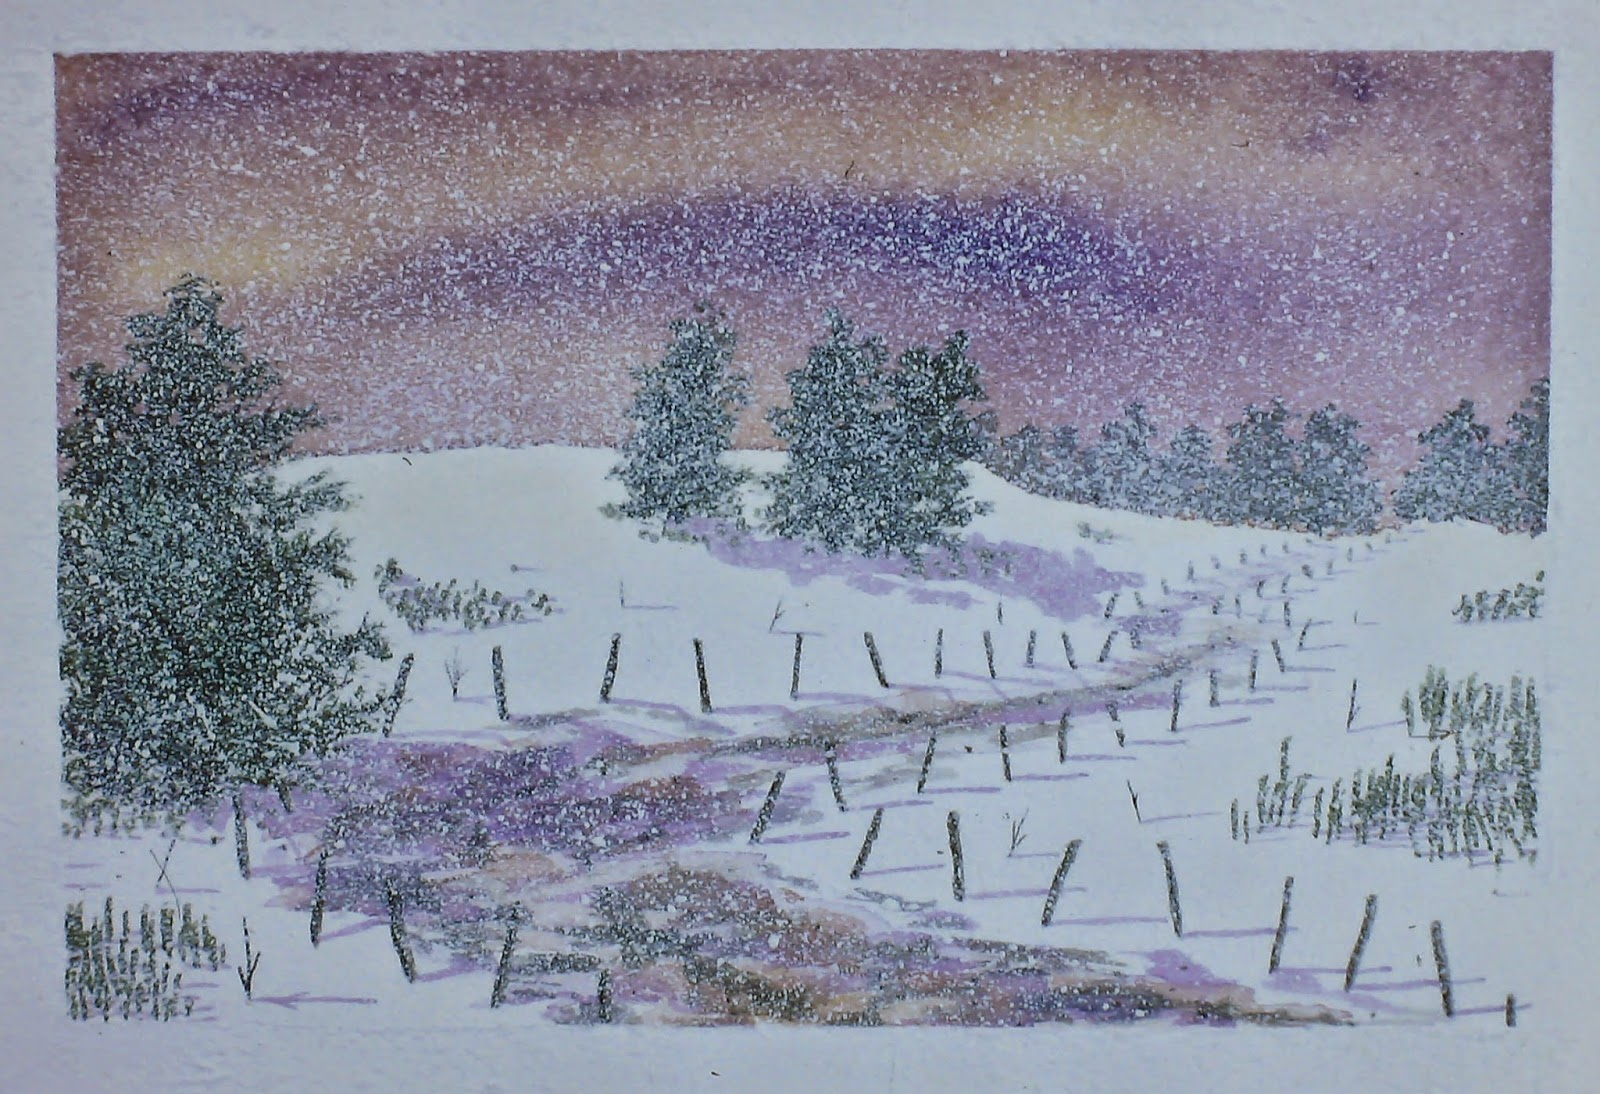 Northern Lights, Back Road, near Little Keithock Farmhouse, Angus, Scotland  30x40 inches. Watercolor on paper, c. 1992.  In a private collection in Seattle, Washington